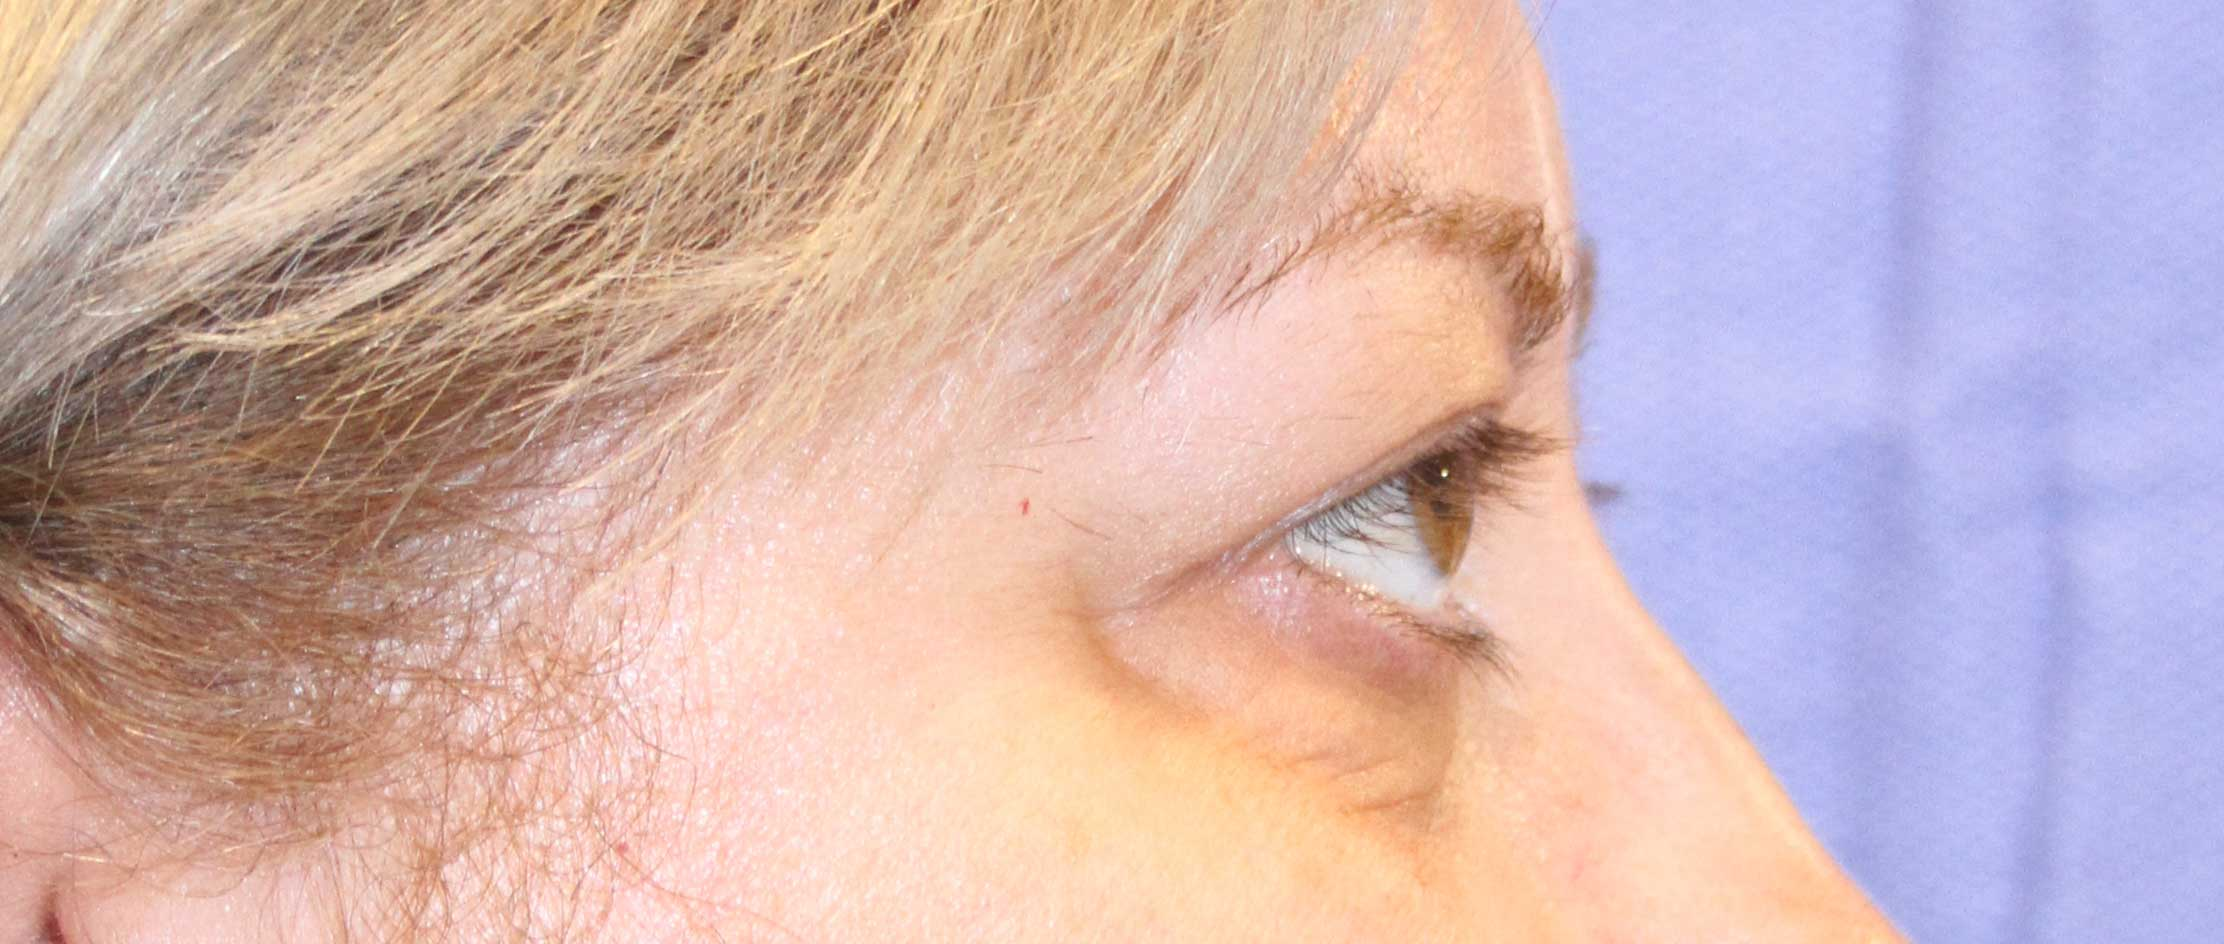 Lower Eyelid Before Surgery